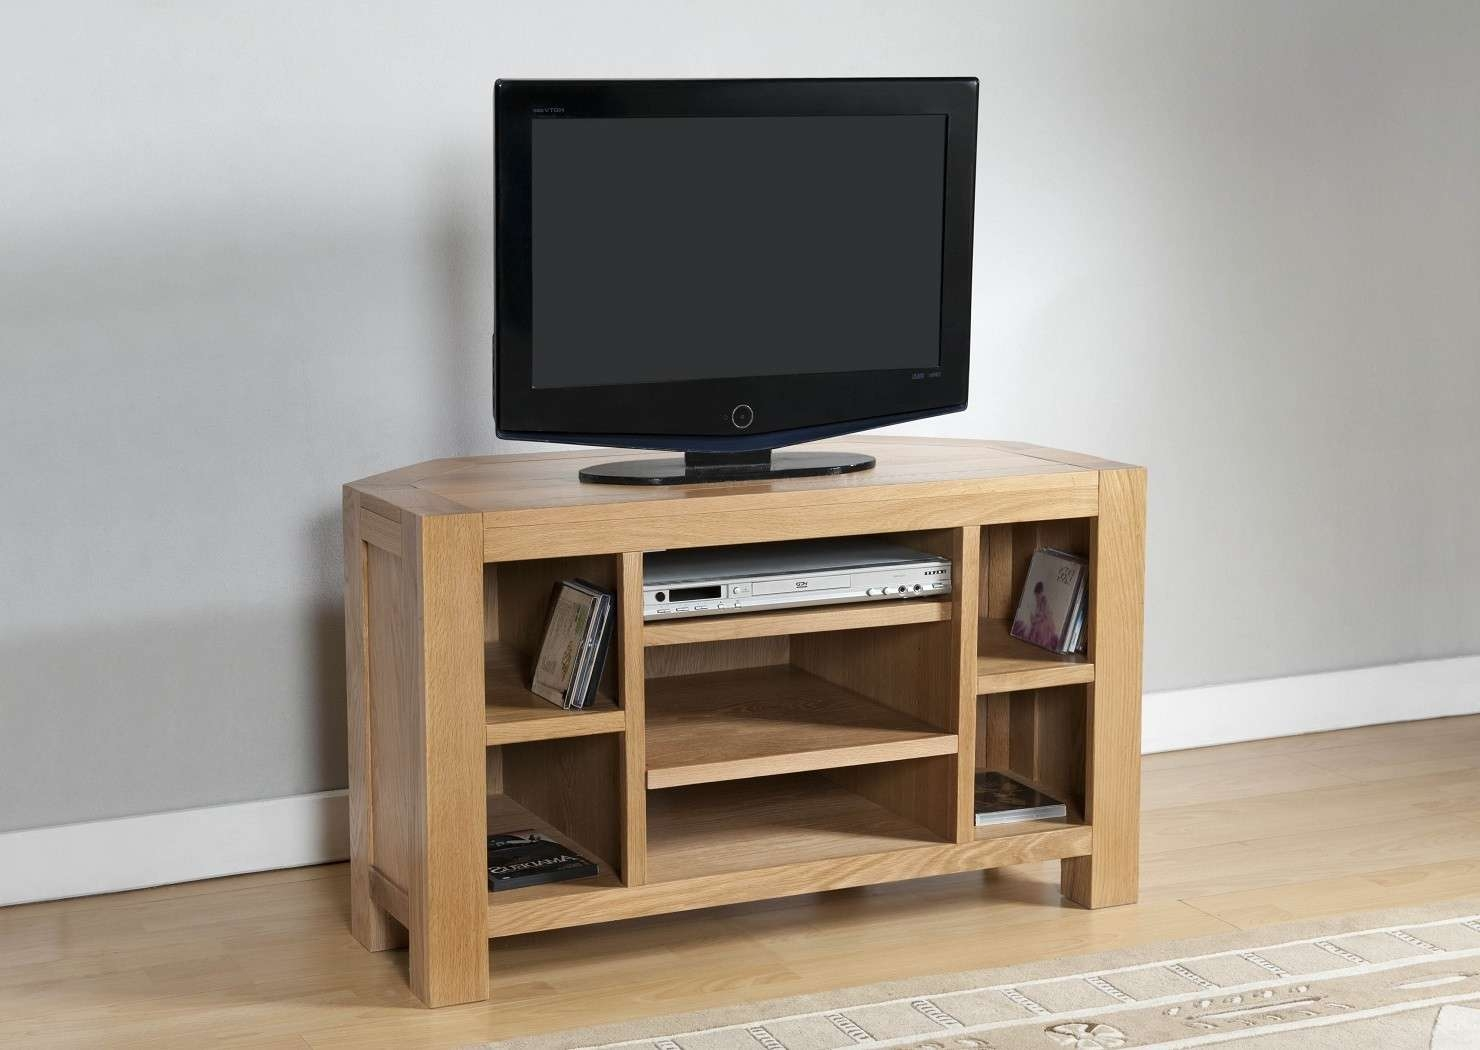 Aylesbury Contemporary Light Oak Corner Tv Unit | Oak Furniture Uk With Light Oak Tv Cabinets (View 3 of 20)